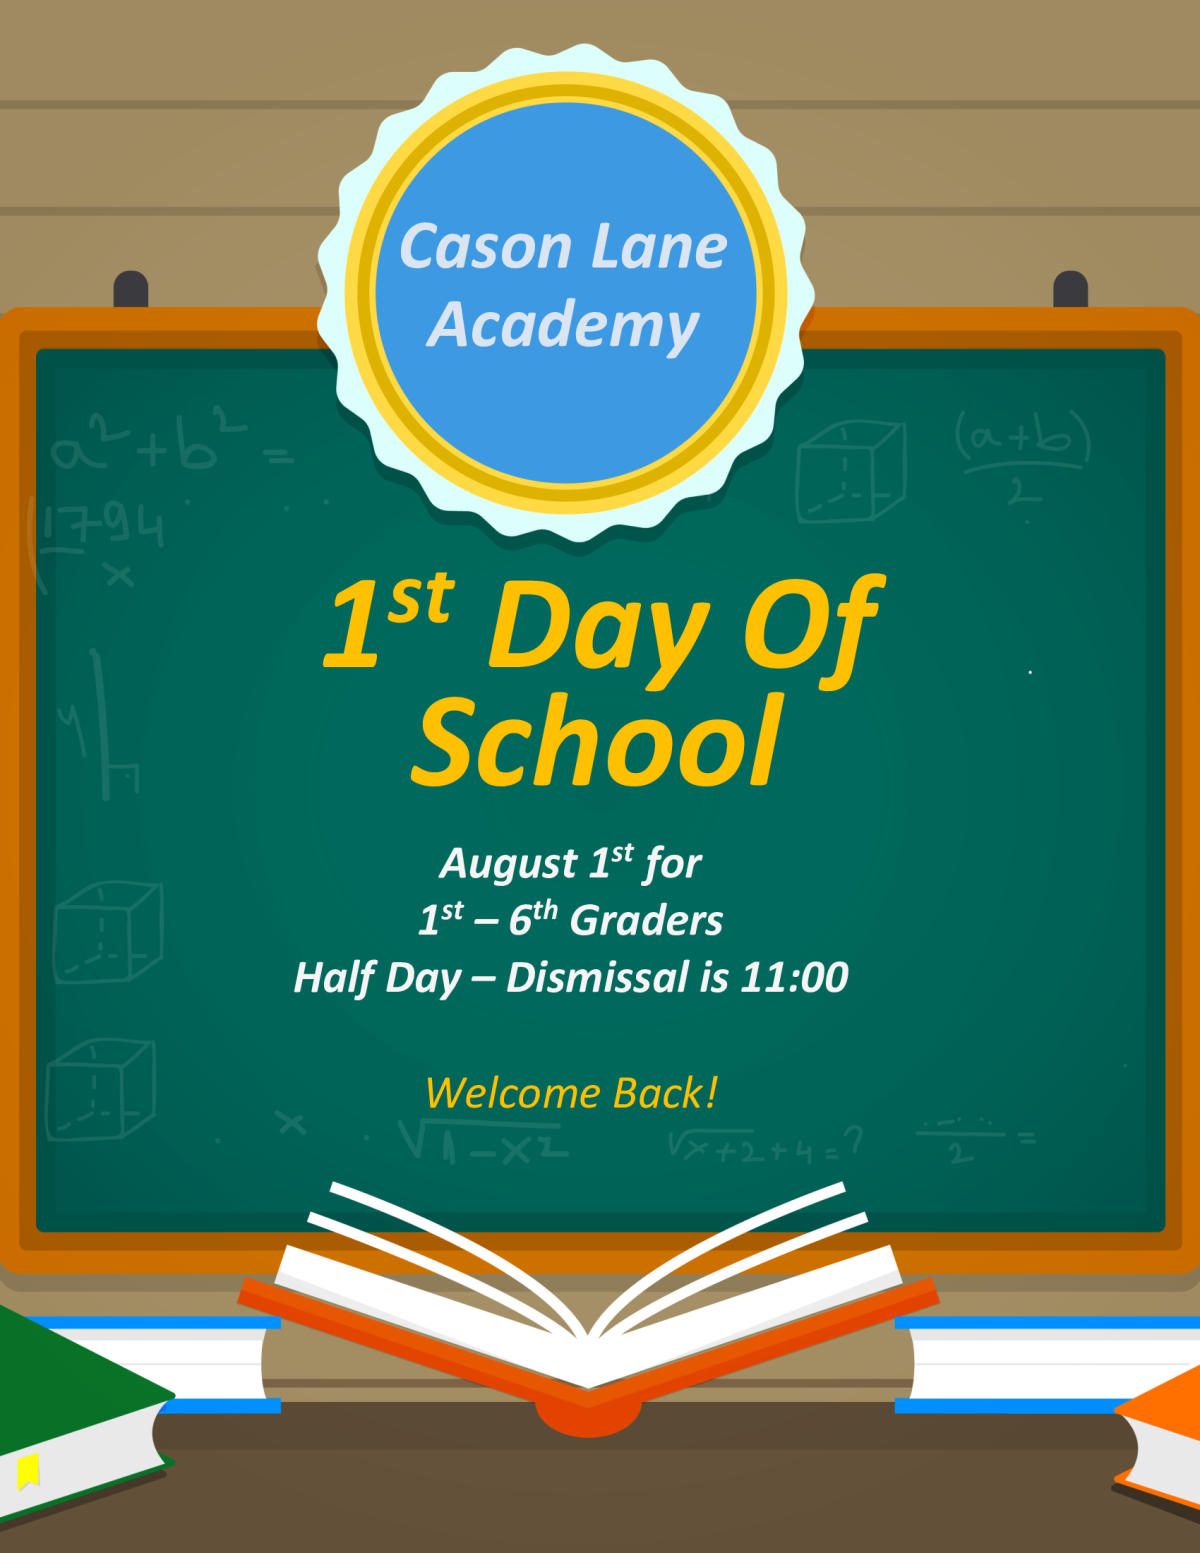 Image of a flyer titled 1st Day of School